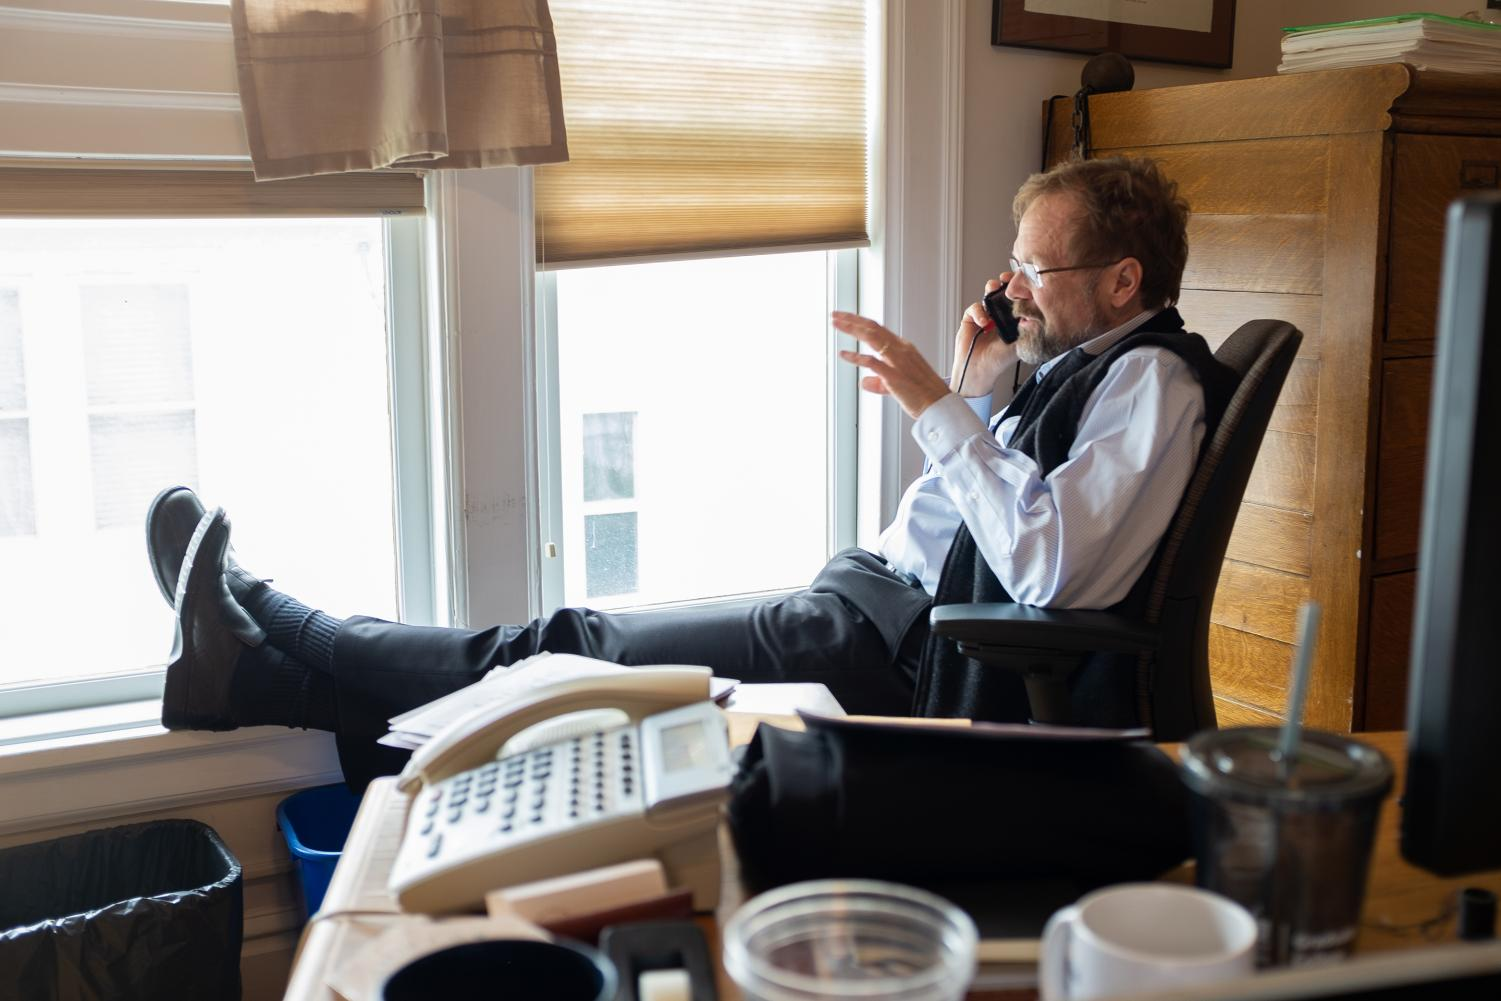 Christopher Merrill, the director of the International Writing Program, makes a phone call at his desk on April 12. Merrill's career began with covering the 1990 Fifa World Cup in Italy, and he has visited more than 100 countries.